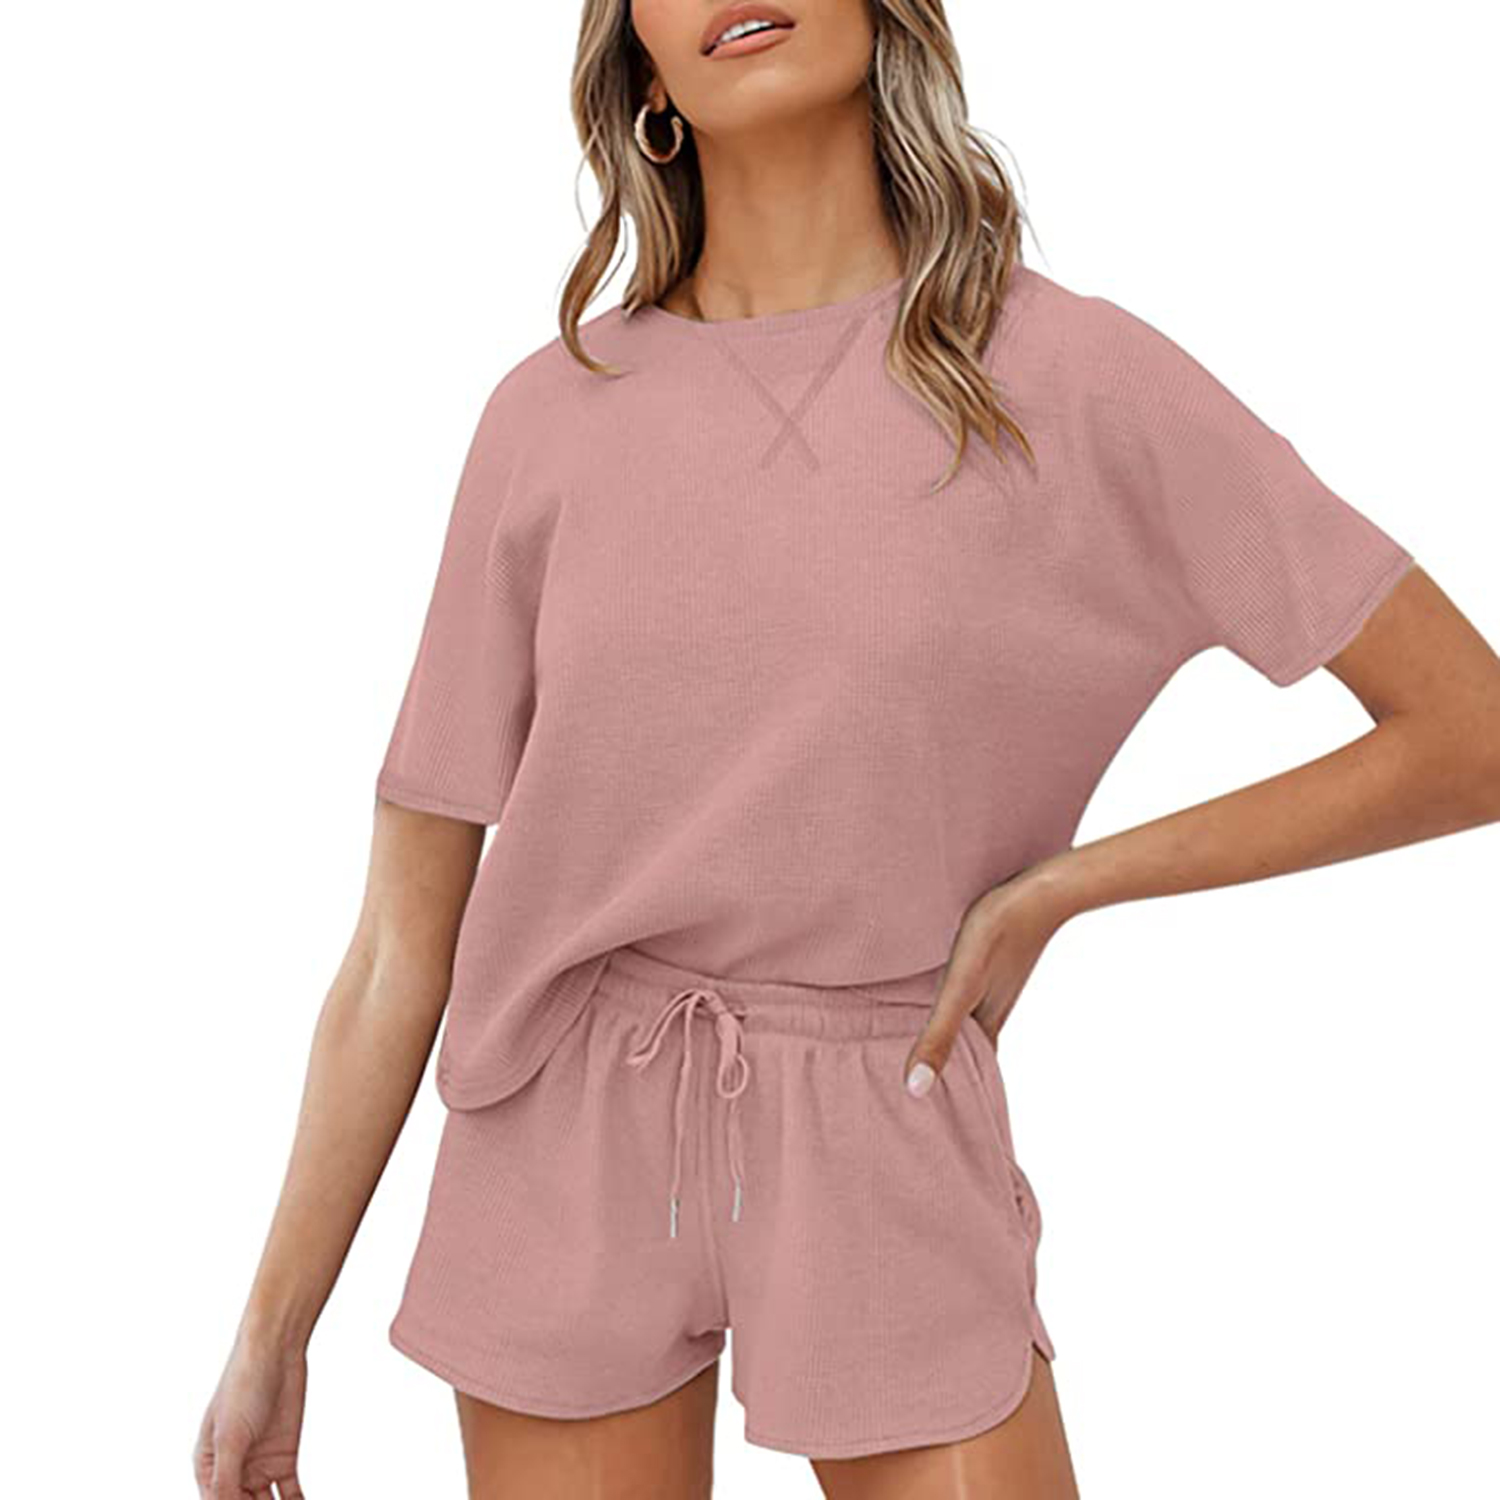 ZESICA Women's Waffle Knit Pajama Set Short Sleeve Top and Shorts Loungewear